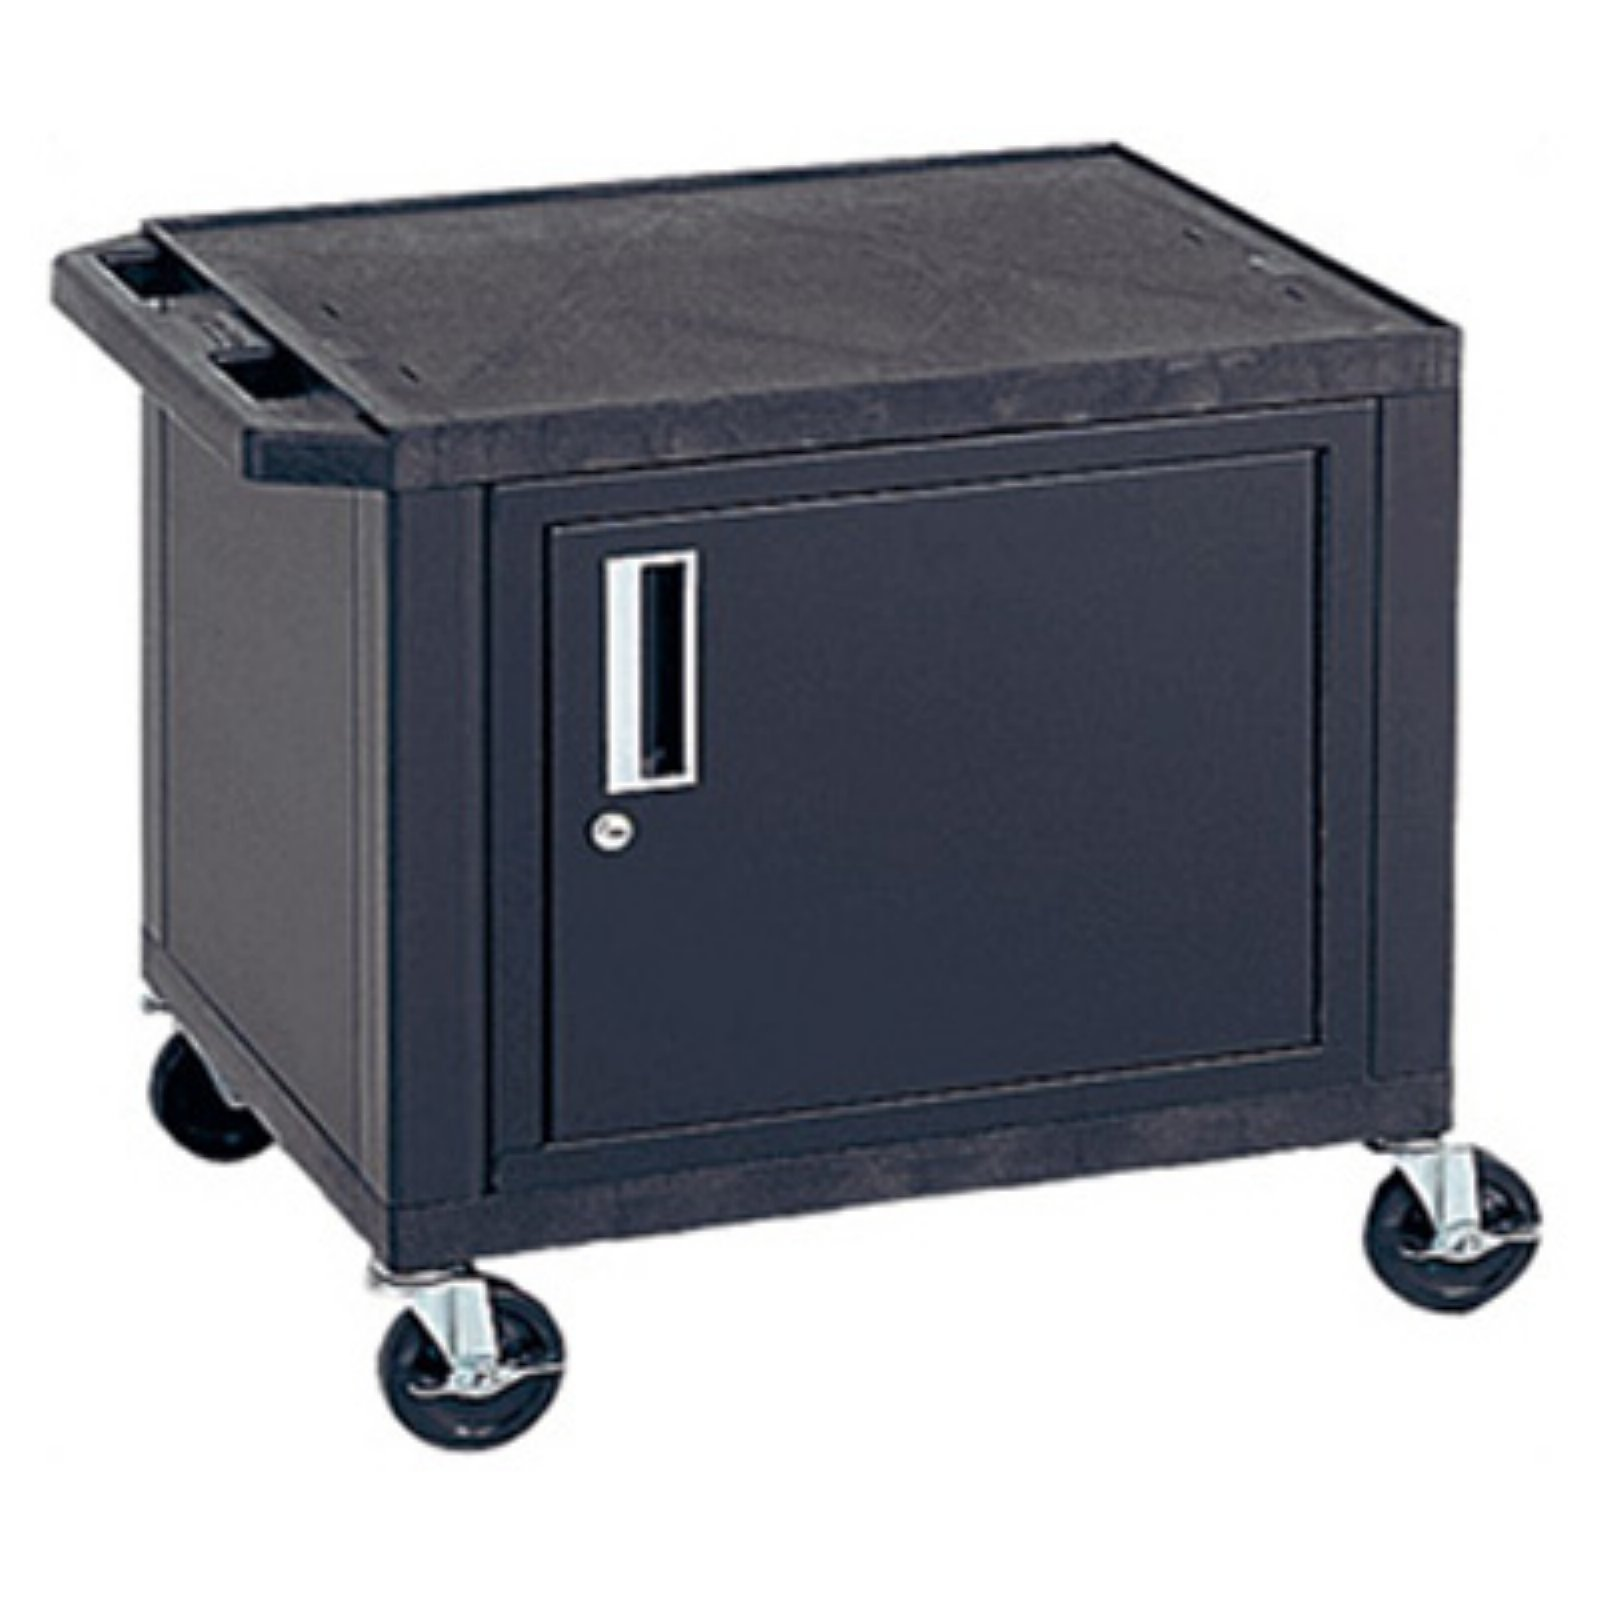 H. Wilson Black Electric Tuffy Utility Cart with Cabinet